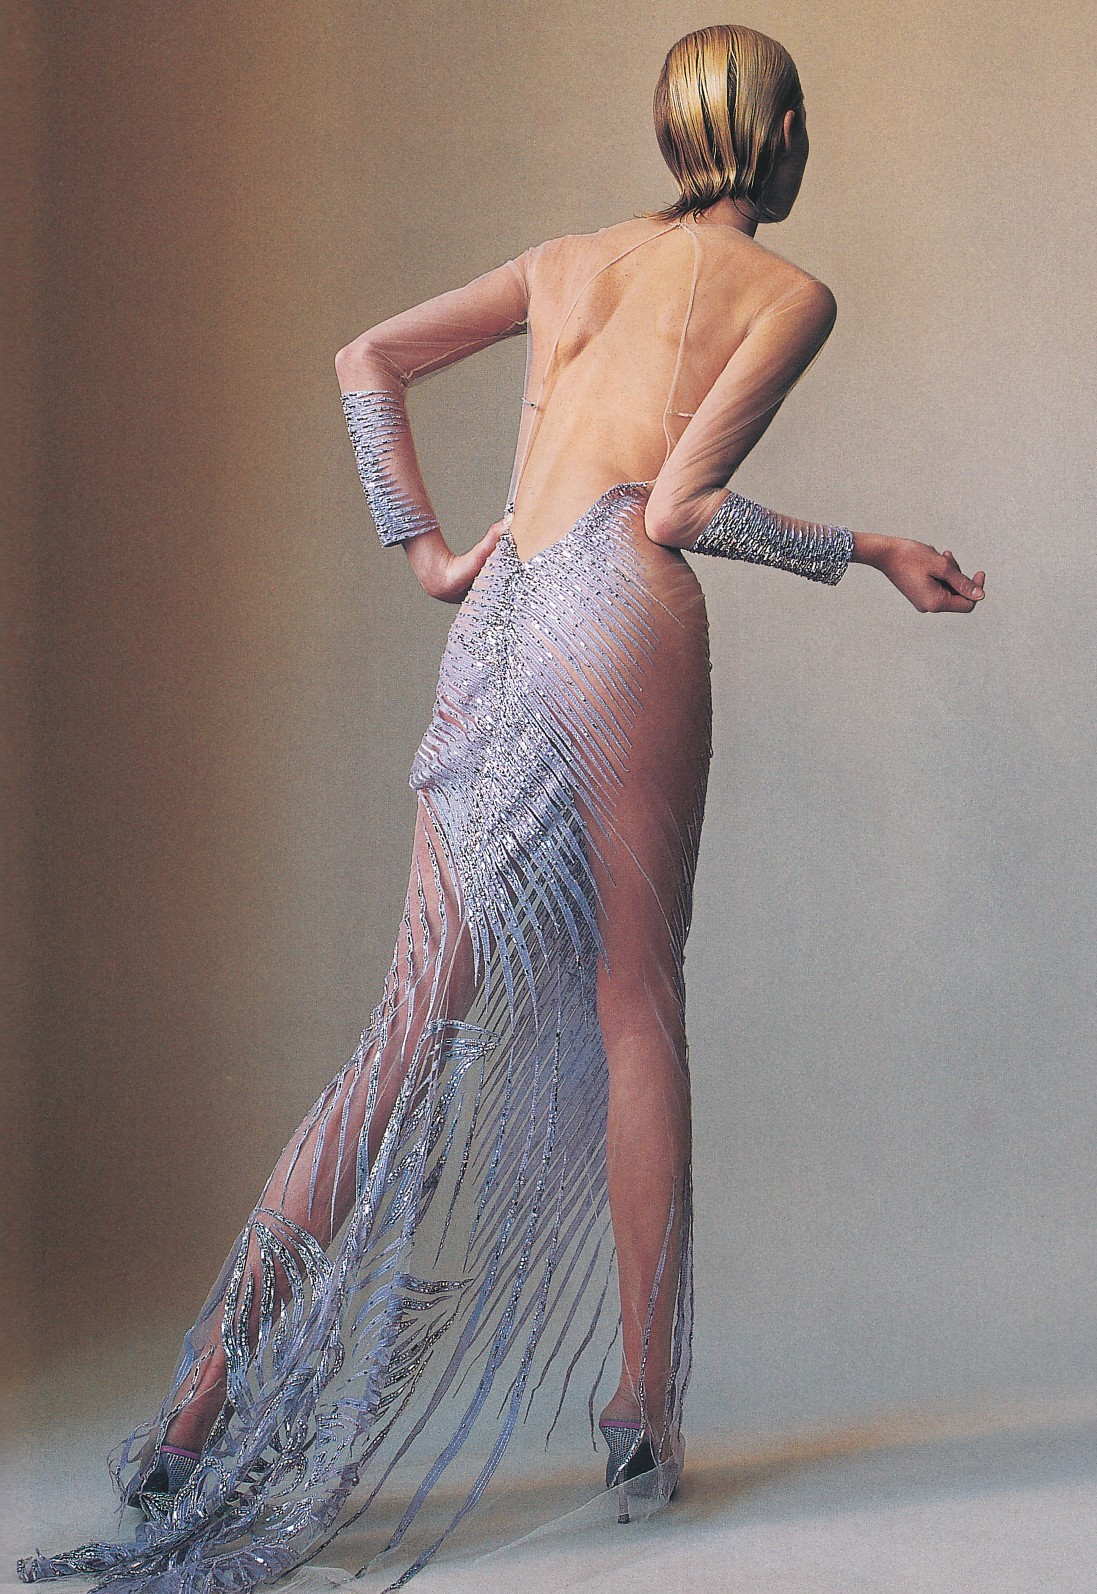 thedoppelganger:     How to Wear CoutureMagazine: Vogue US April 2000Photographer: Irving PennModel: Maggie Rizer